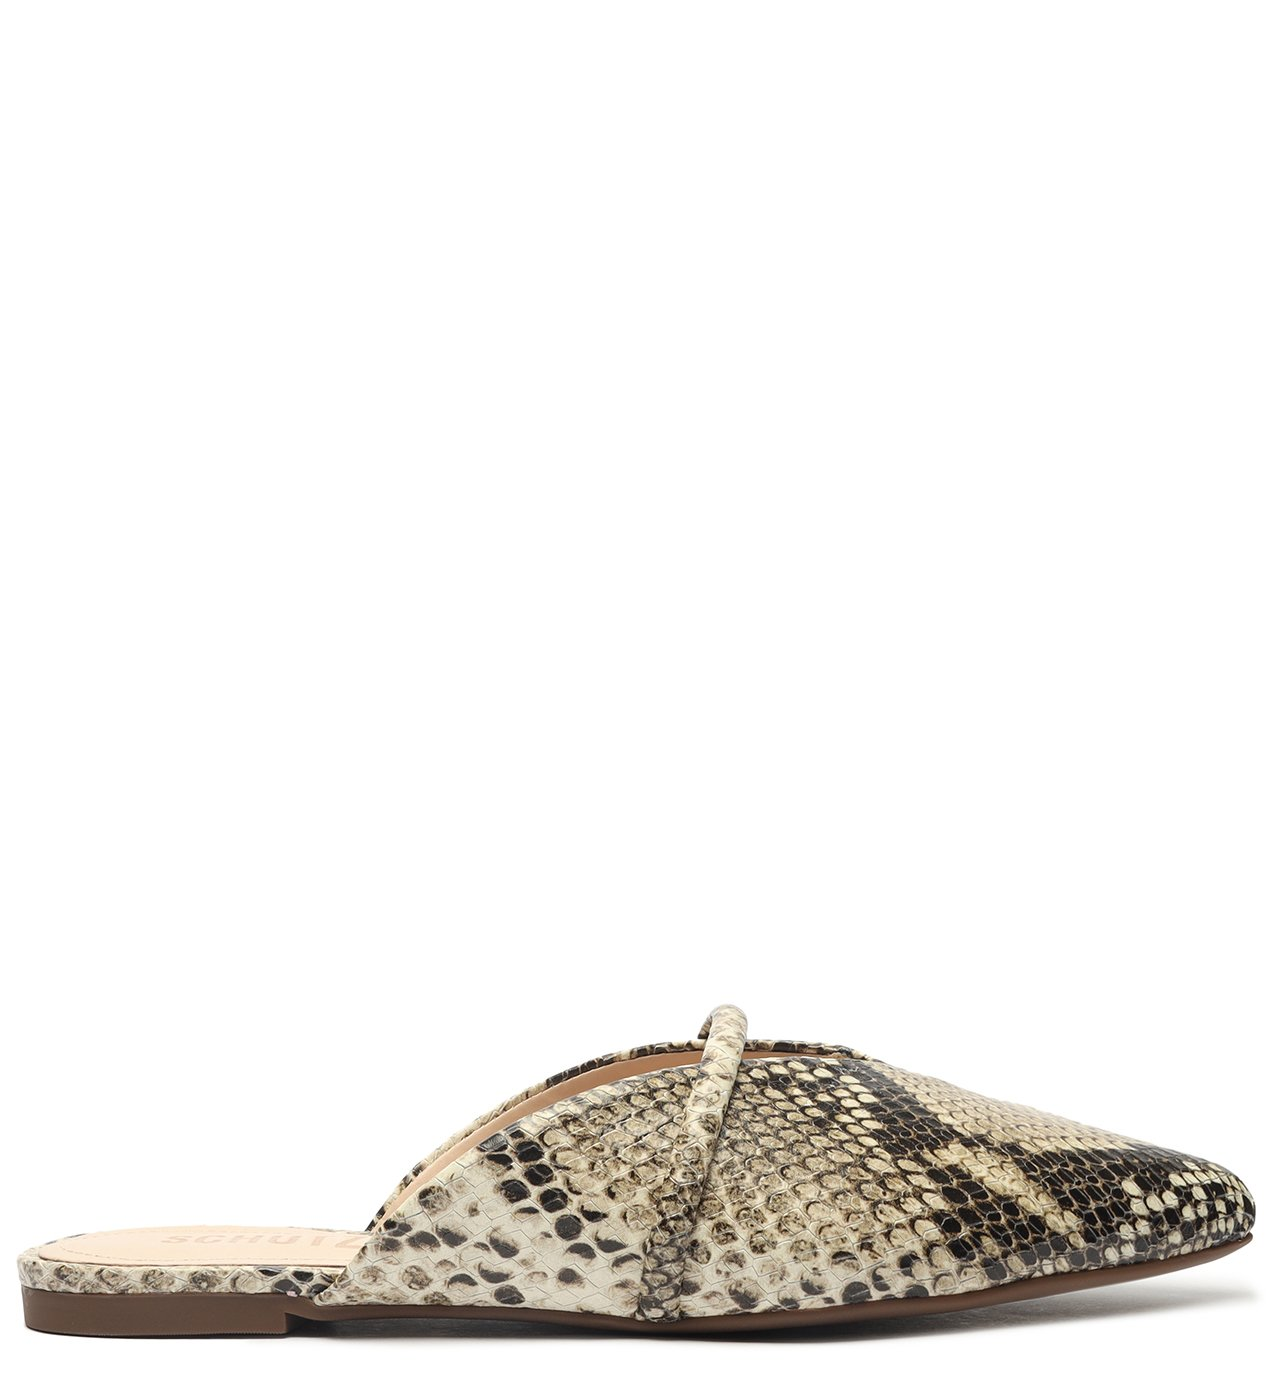 Flat Mule Croco Multineutral | Schutz